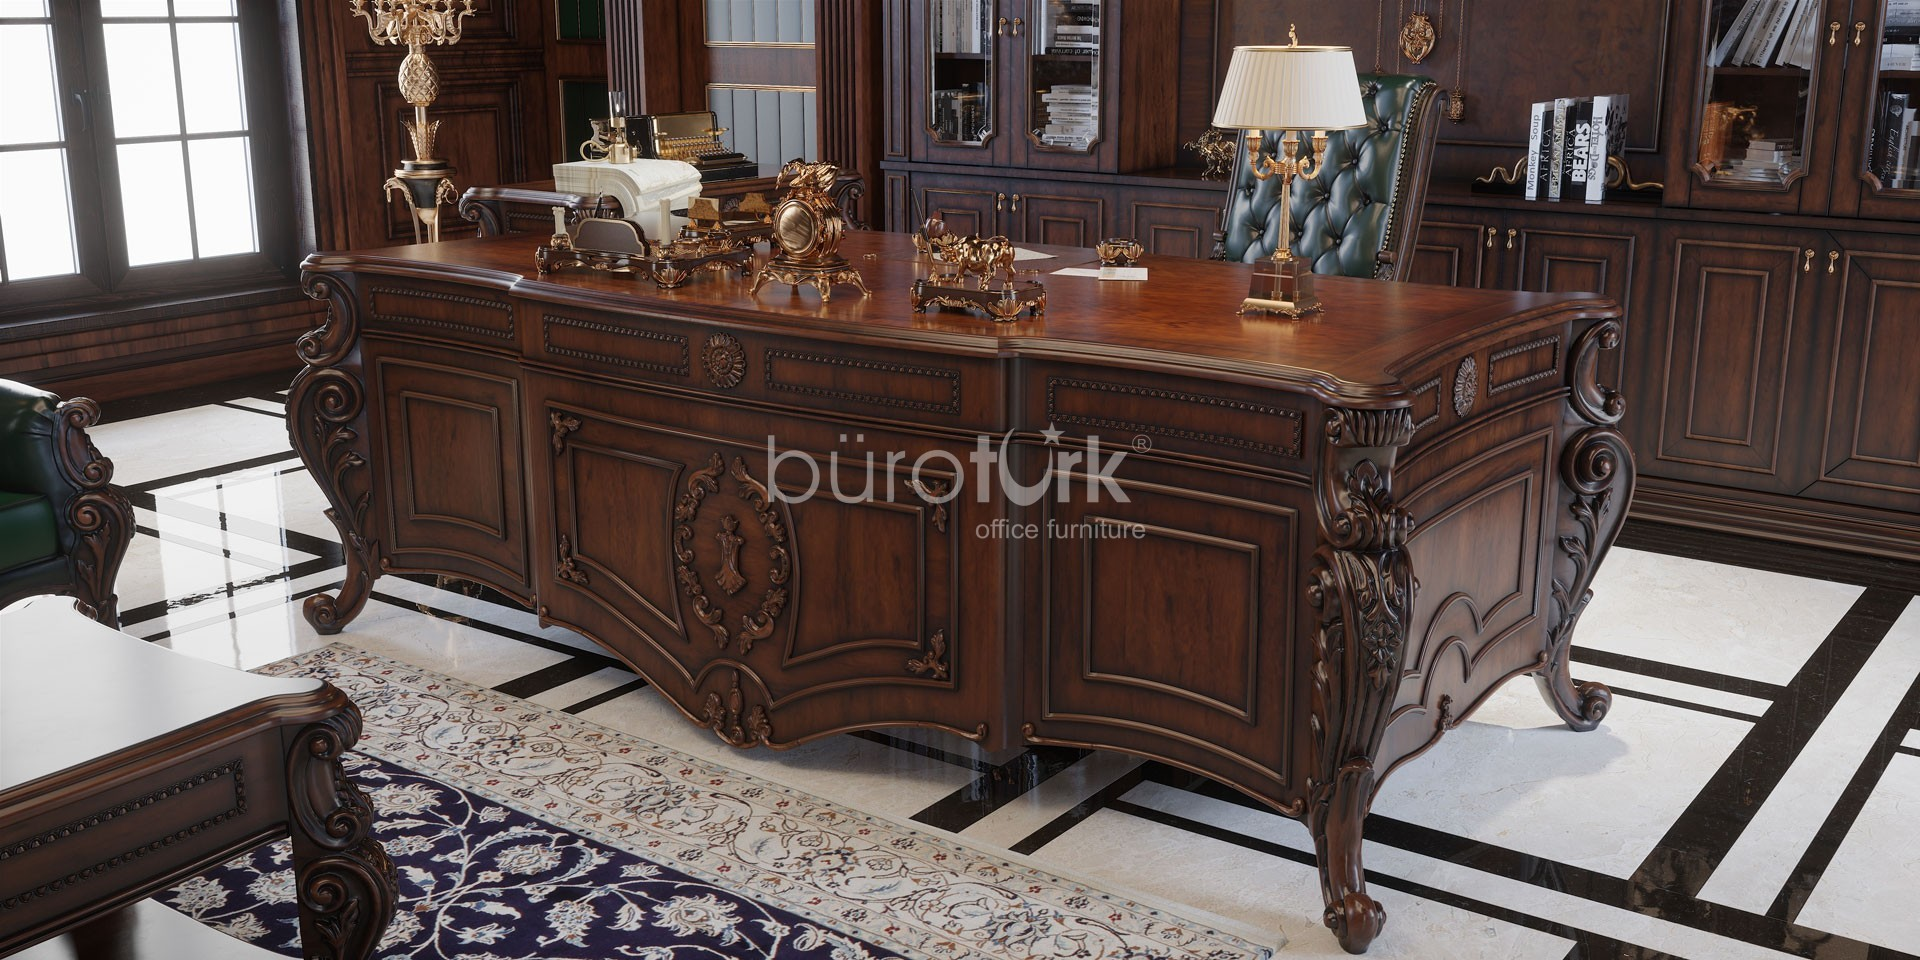 | Bürotürk | Office Furniture |